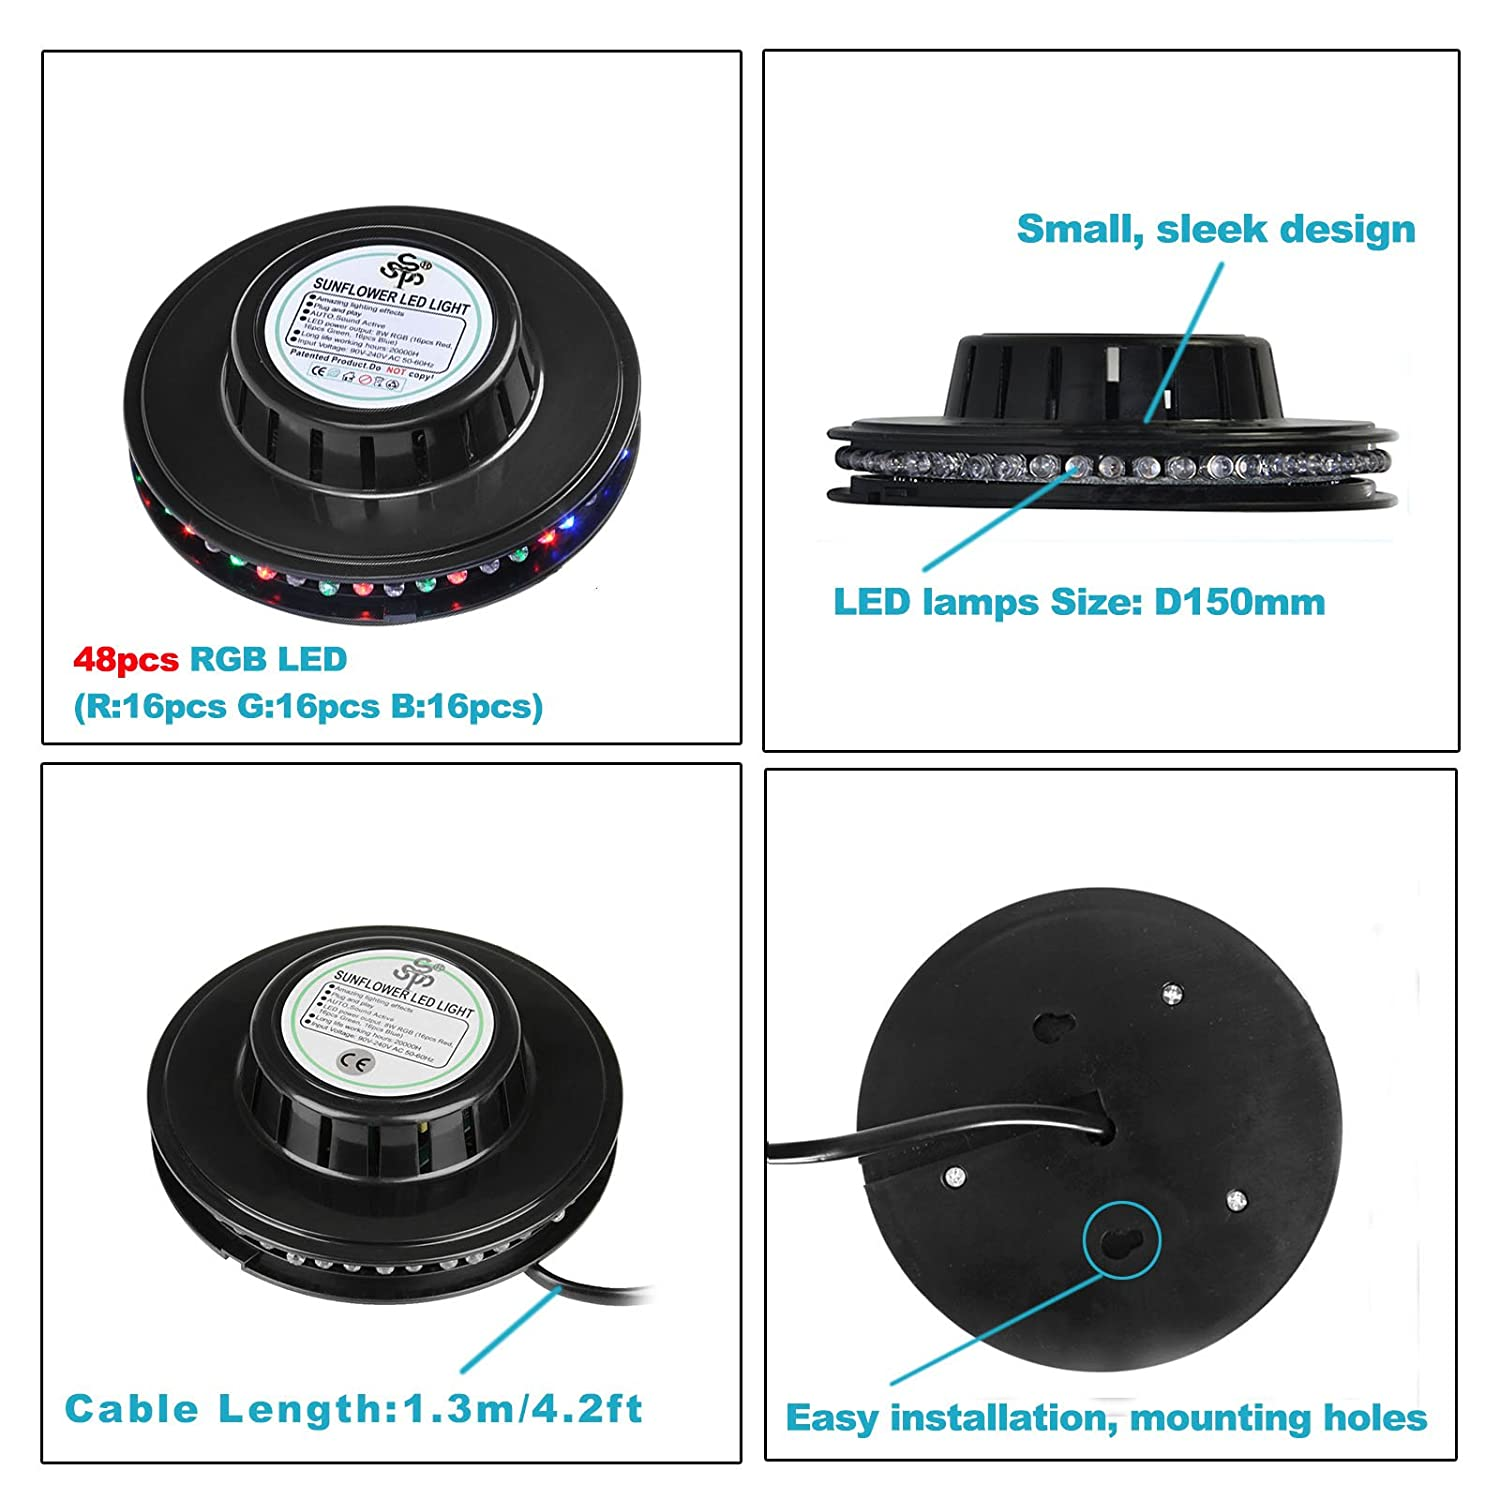 8w 48leds seven color sun pattern plastic stage lamp ac 90 240v - Amazon Com Tsss Xl40 B Sunflower Led Stage Light Magic 7 Color Rgb Rotating Lights For Home Children Party Wedding Birthday Celebration Event Musical